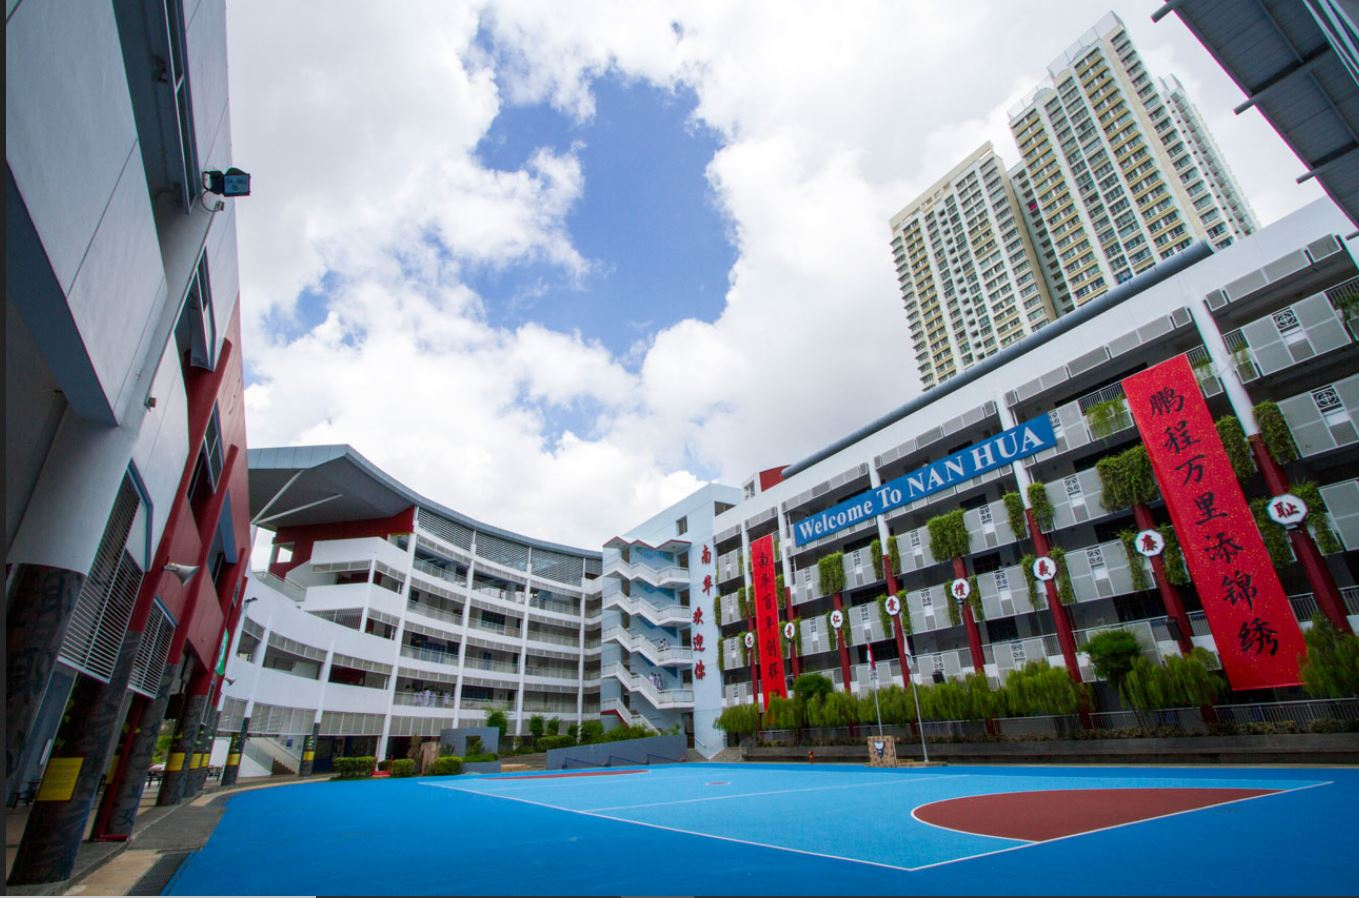 clavon-condo-nan-hua-high-school-singapore